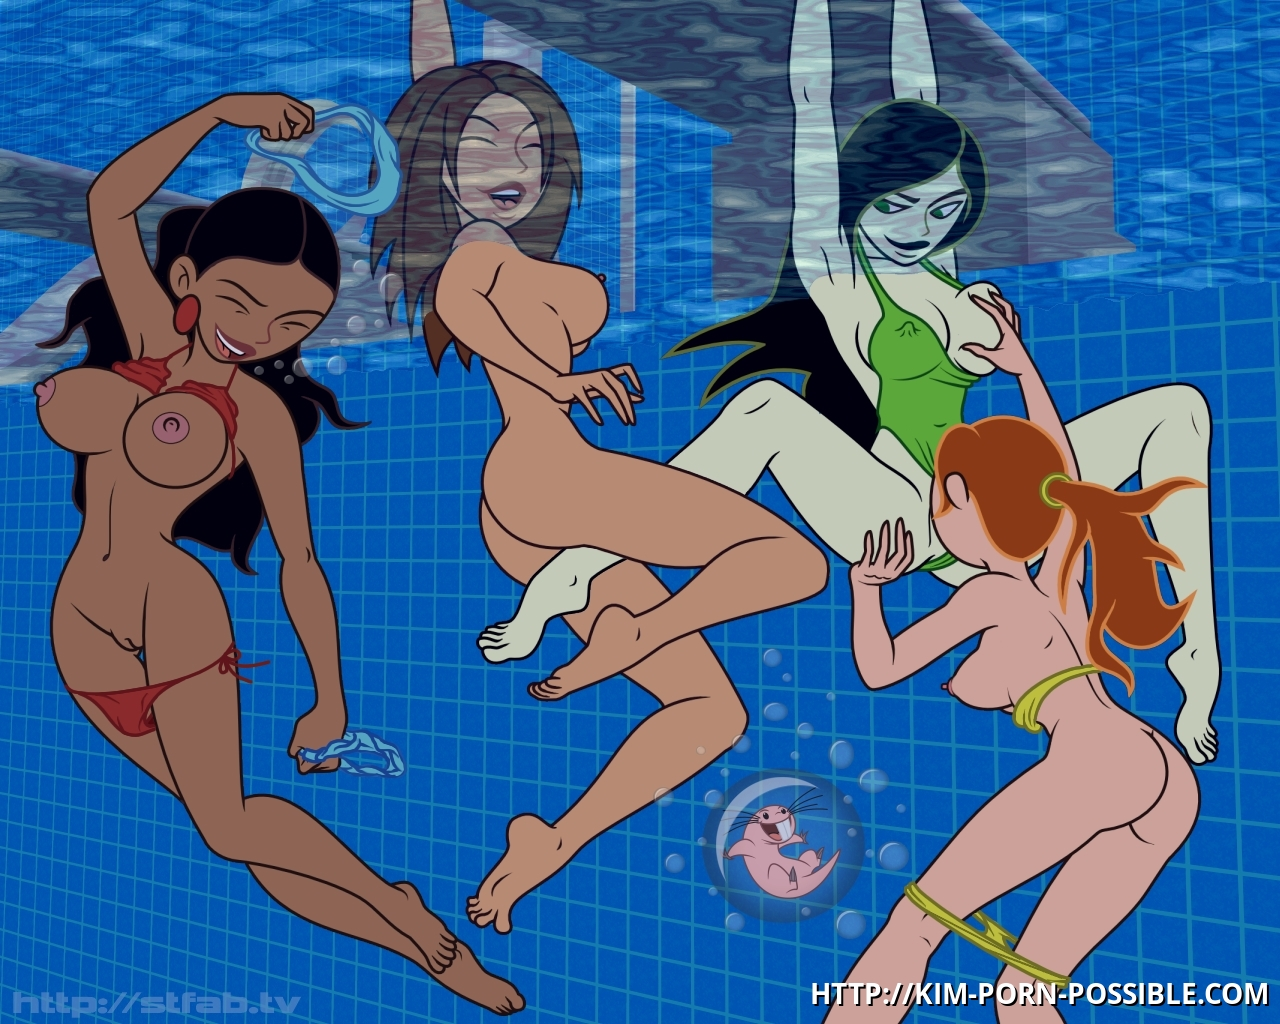 Underwater lesbian fun Kim Possible and her sexy friends!